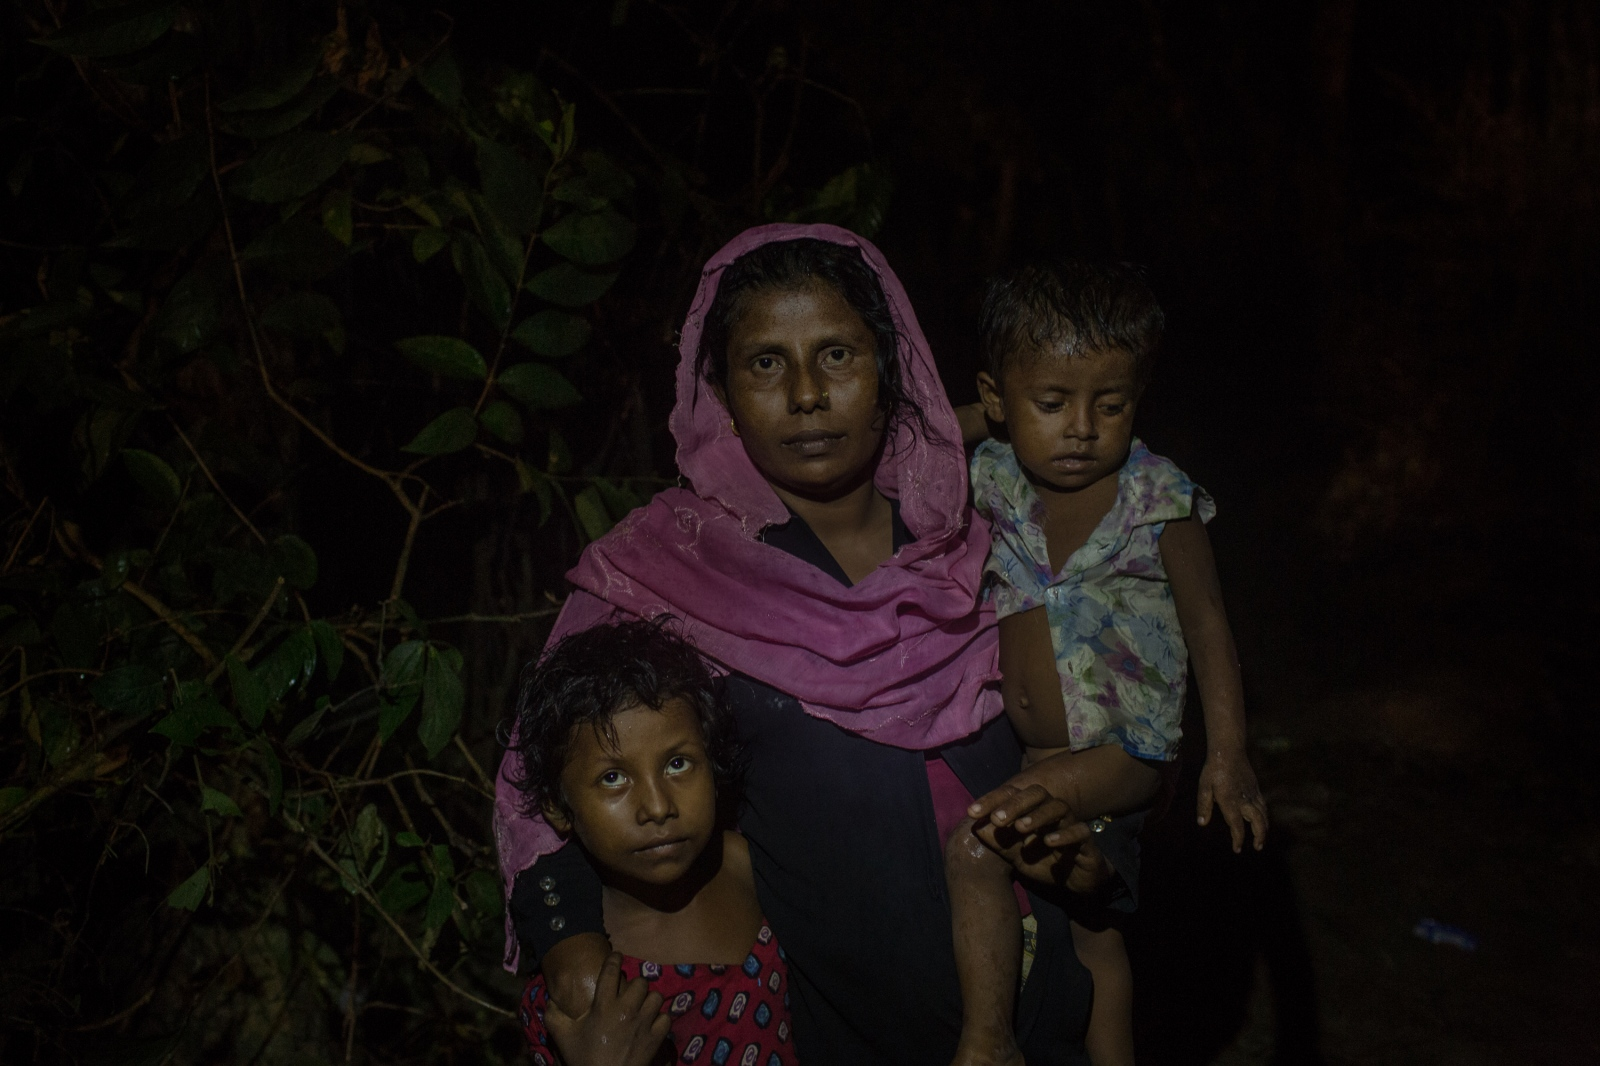 Jahan, 25, waits with her two children by the side of the road for food and cash distributions near the Balukhali refugee camp in Bangladesh on Friday September 22, 2017. Jahan's husband remains in Myanmar but she does not know of his fate. The Burmese Army attacked their village, attempting to round up its civilians, when her husband ran away.